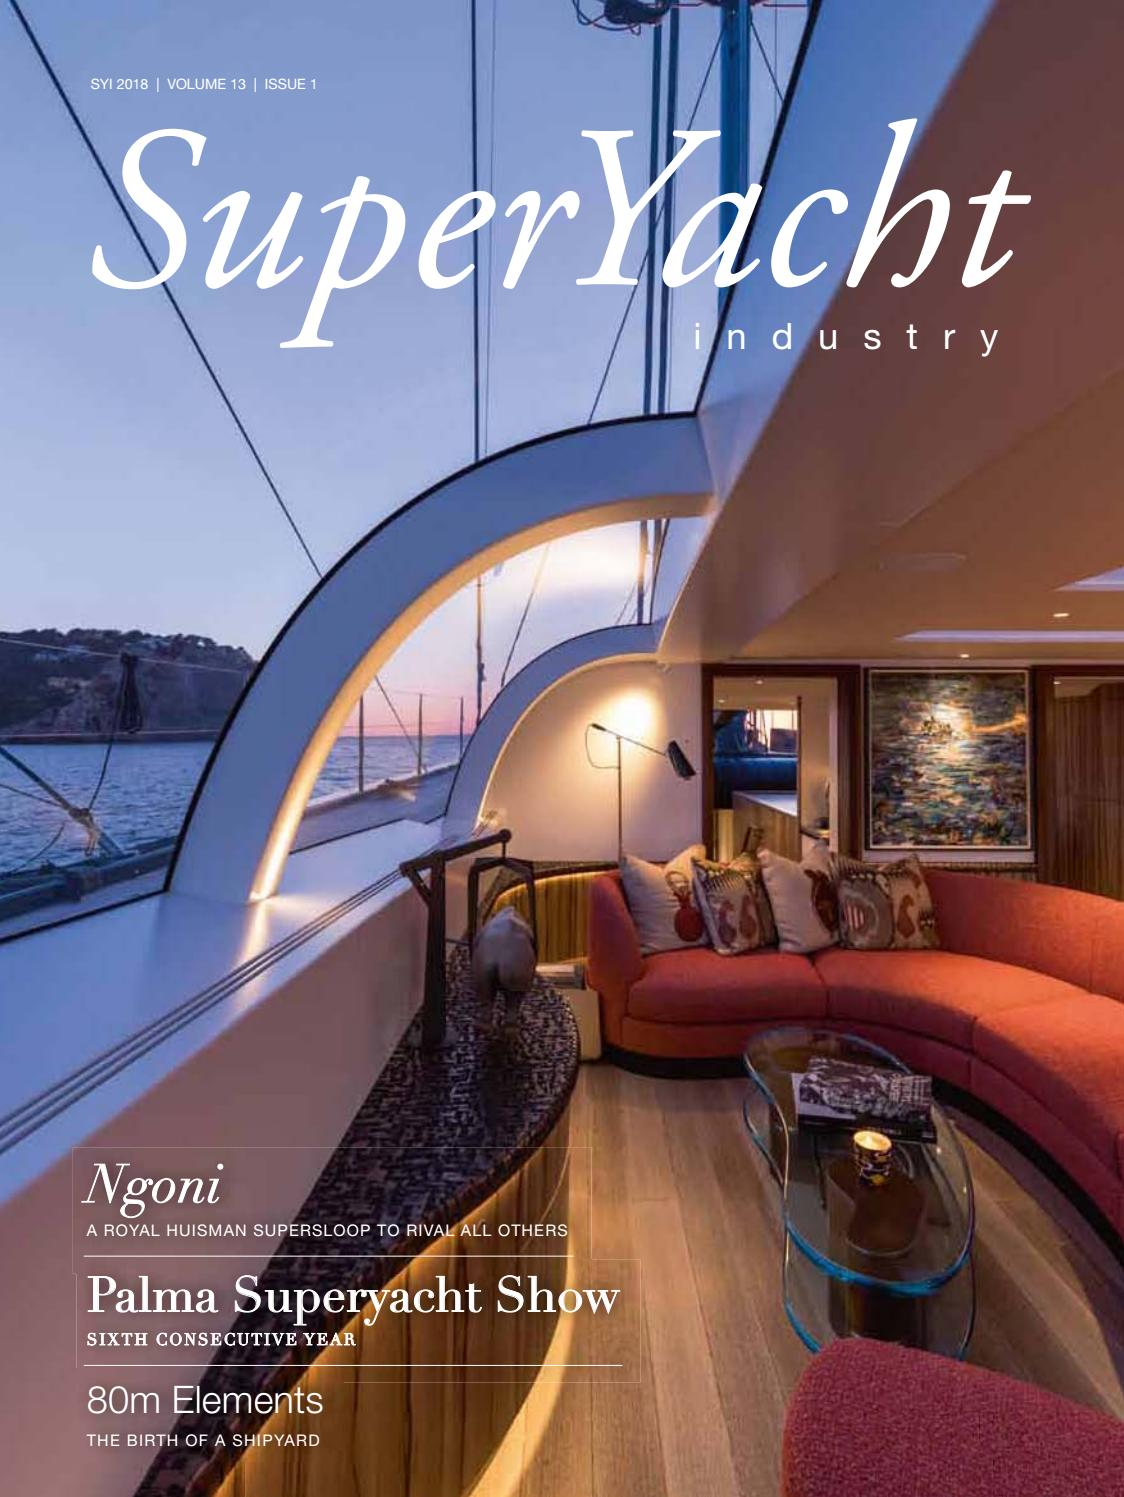 a i s spectacular september interior design s hall interior design pr SuperYacht Industry 2018 Issue 1 by Yellow u0026 Finch Publishers - issuu